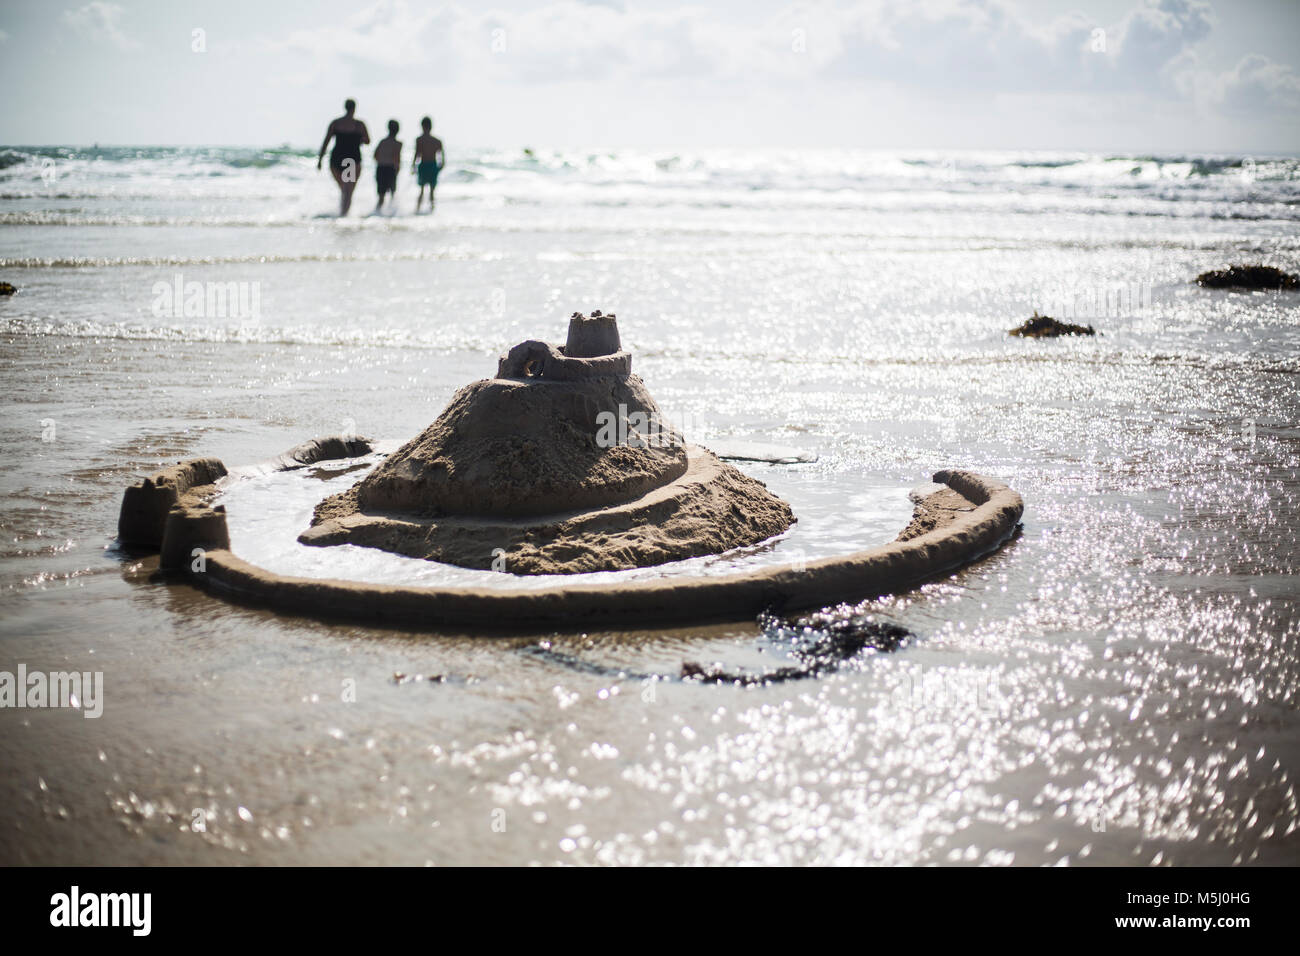 France, Normandy, Portbail, Contentin, sand castle on the beach and family in background - Stock Image